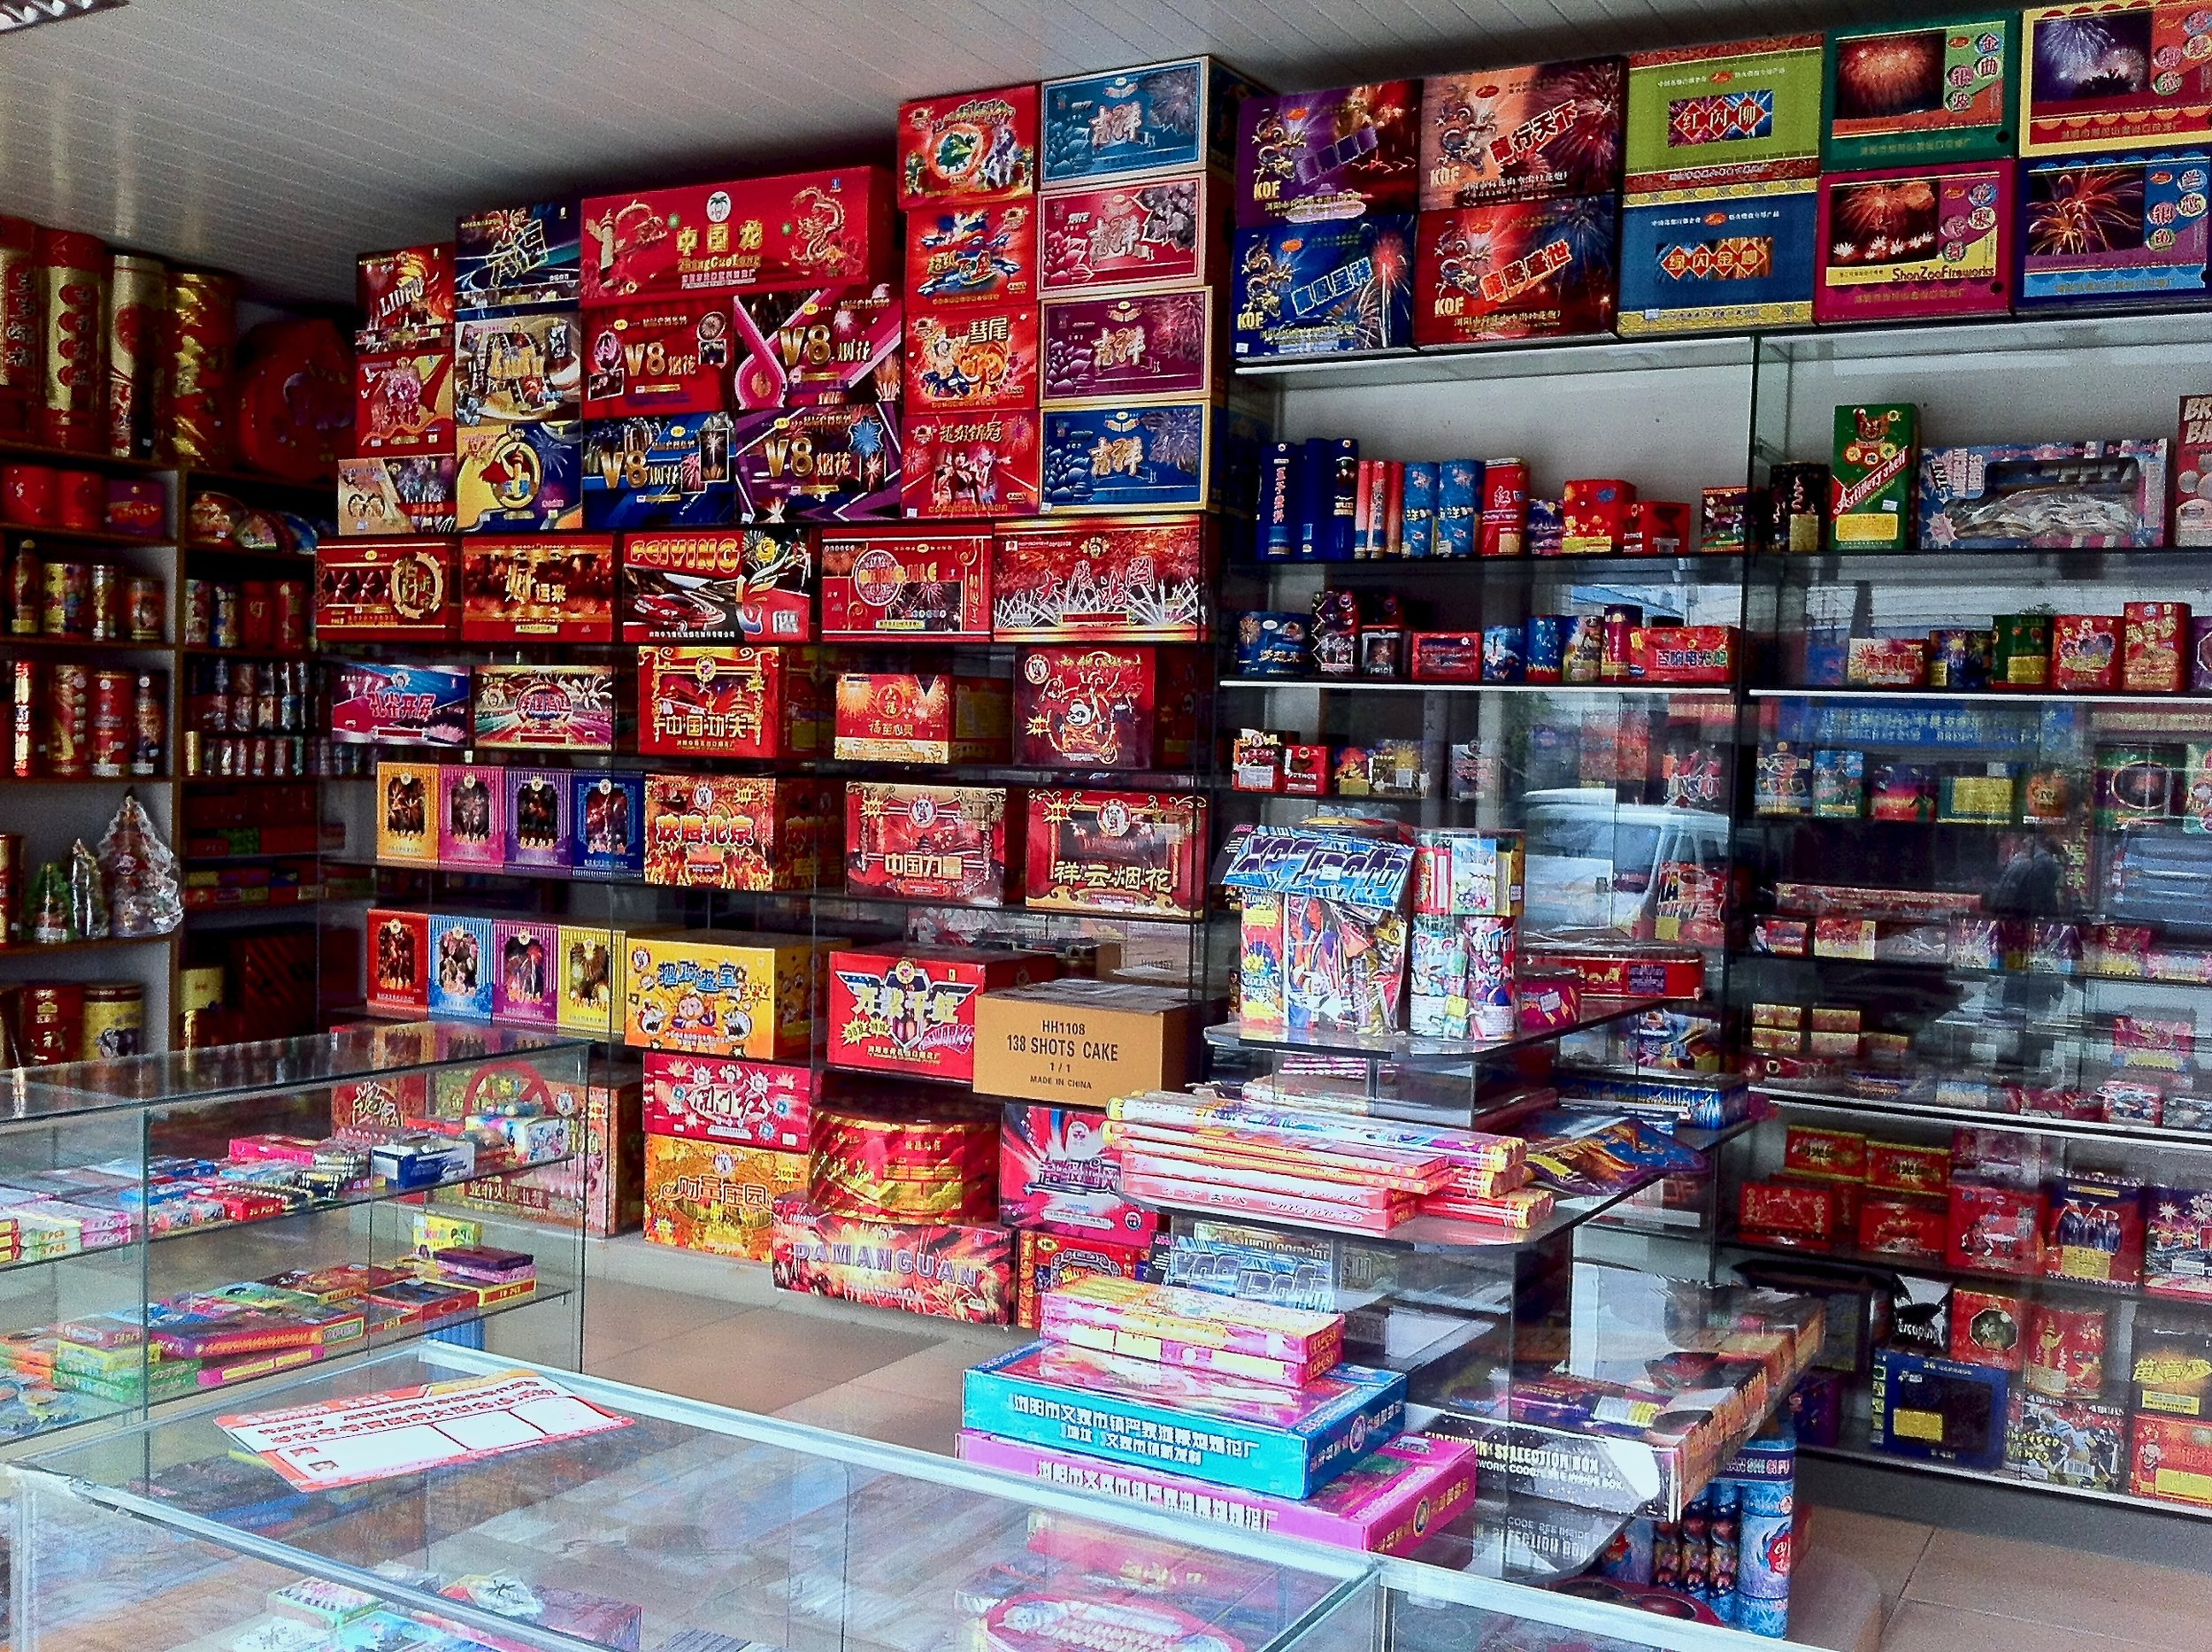 Inside a fireworks store in Liuyang, China. Photo: (C) Remko Tanis